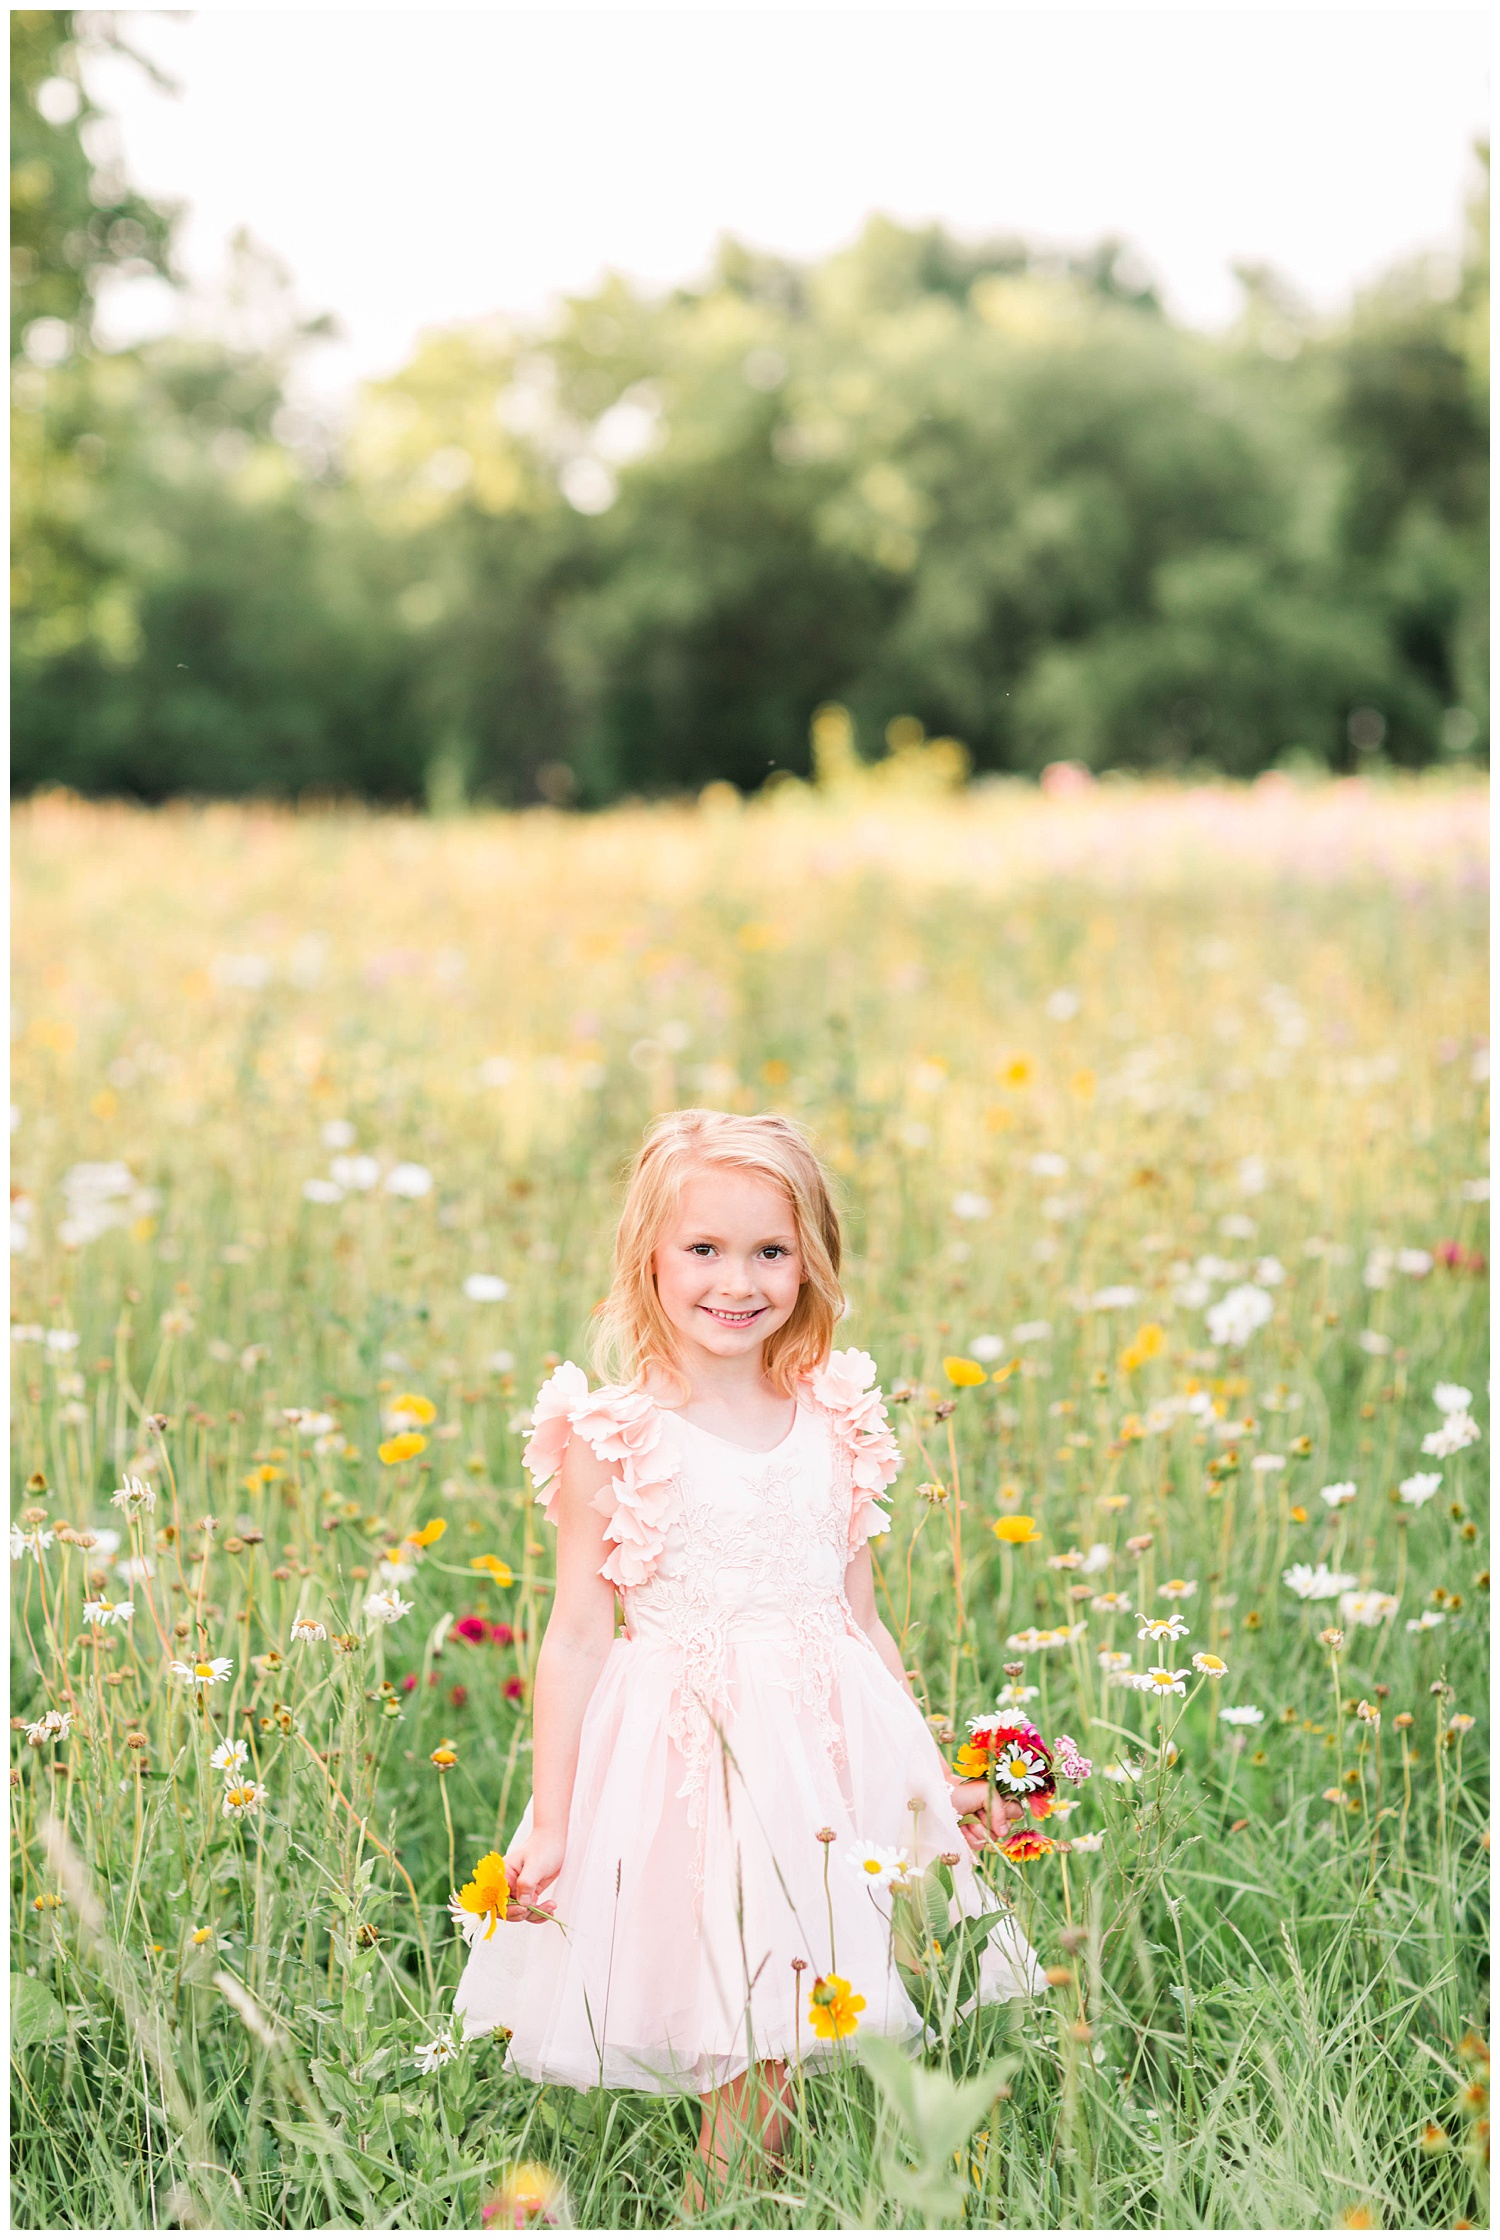 Little Liella stands in a field of wild flowers holding a bouquet wearing tutu du monde couture dress by Trish Scully   CB Studio